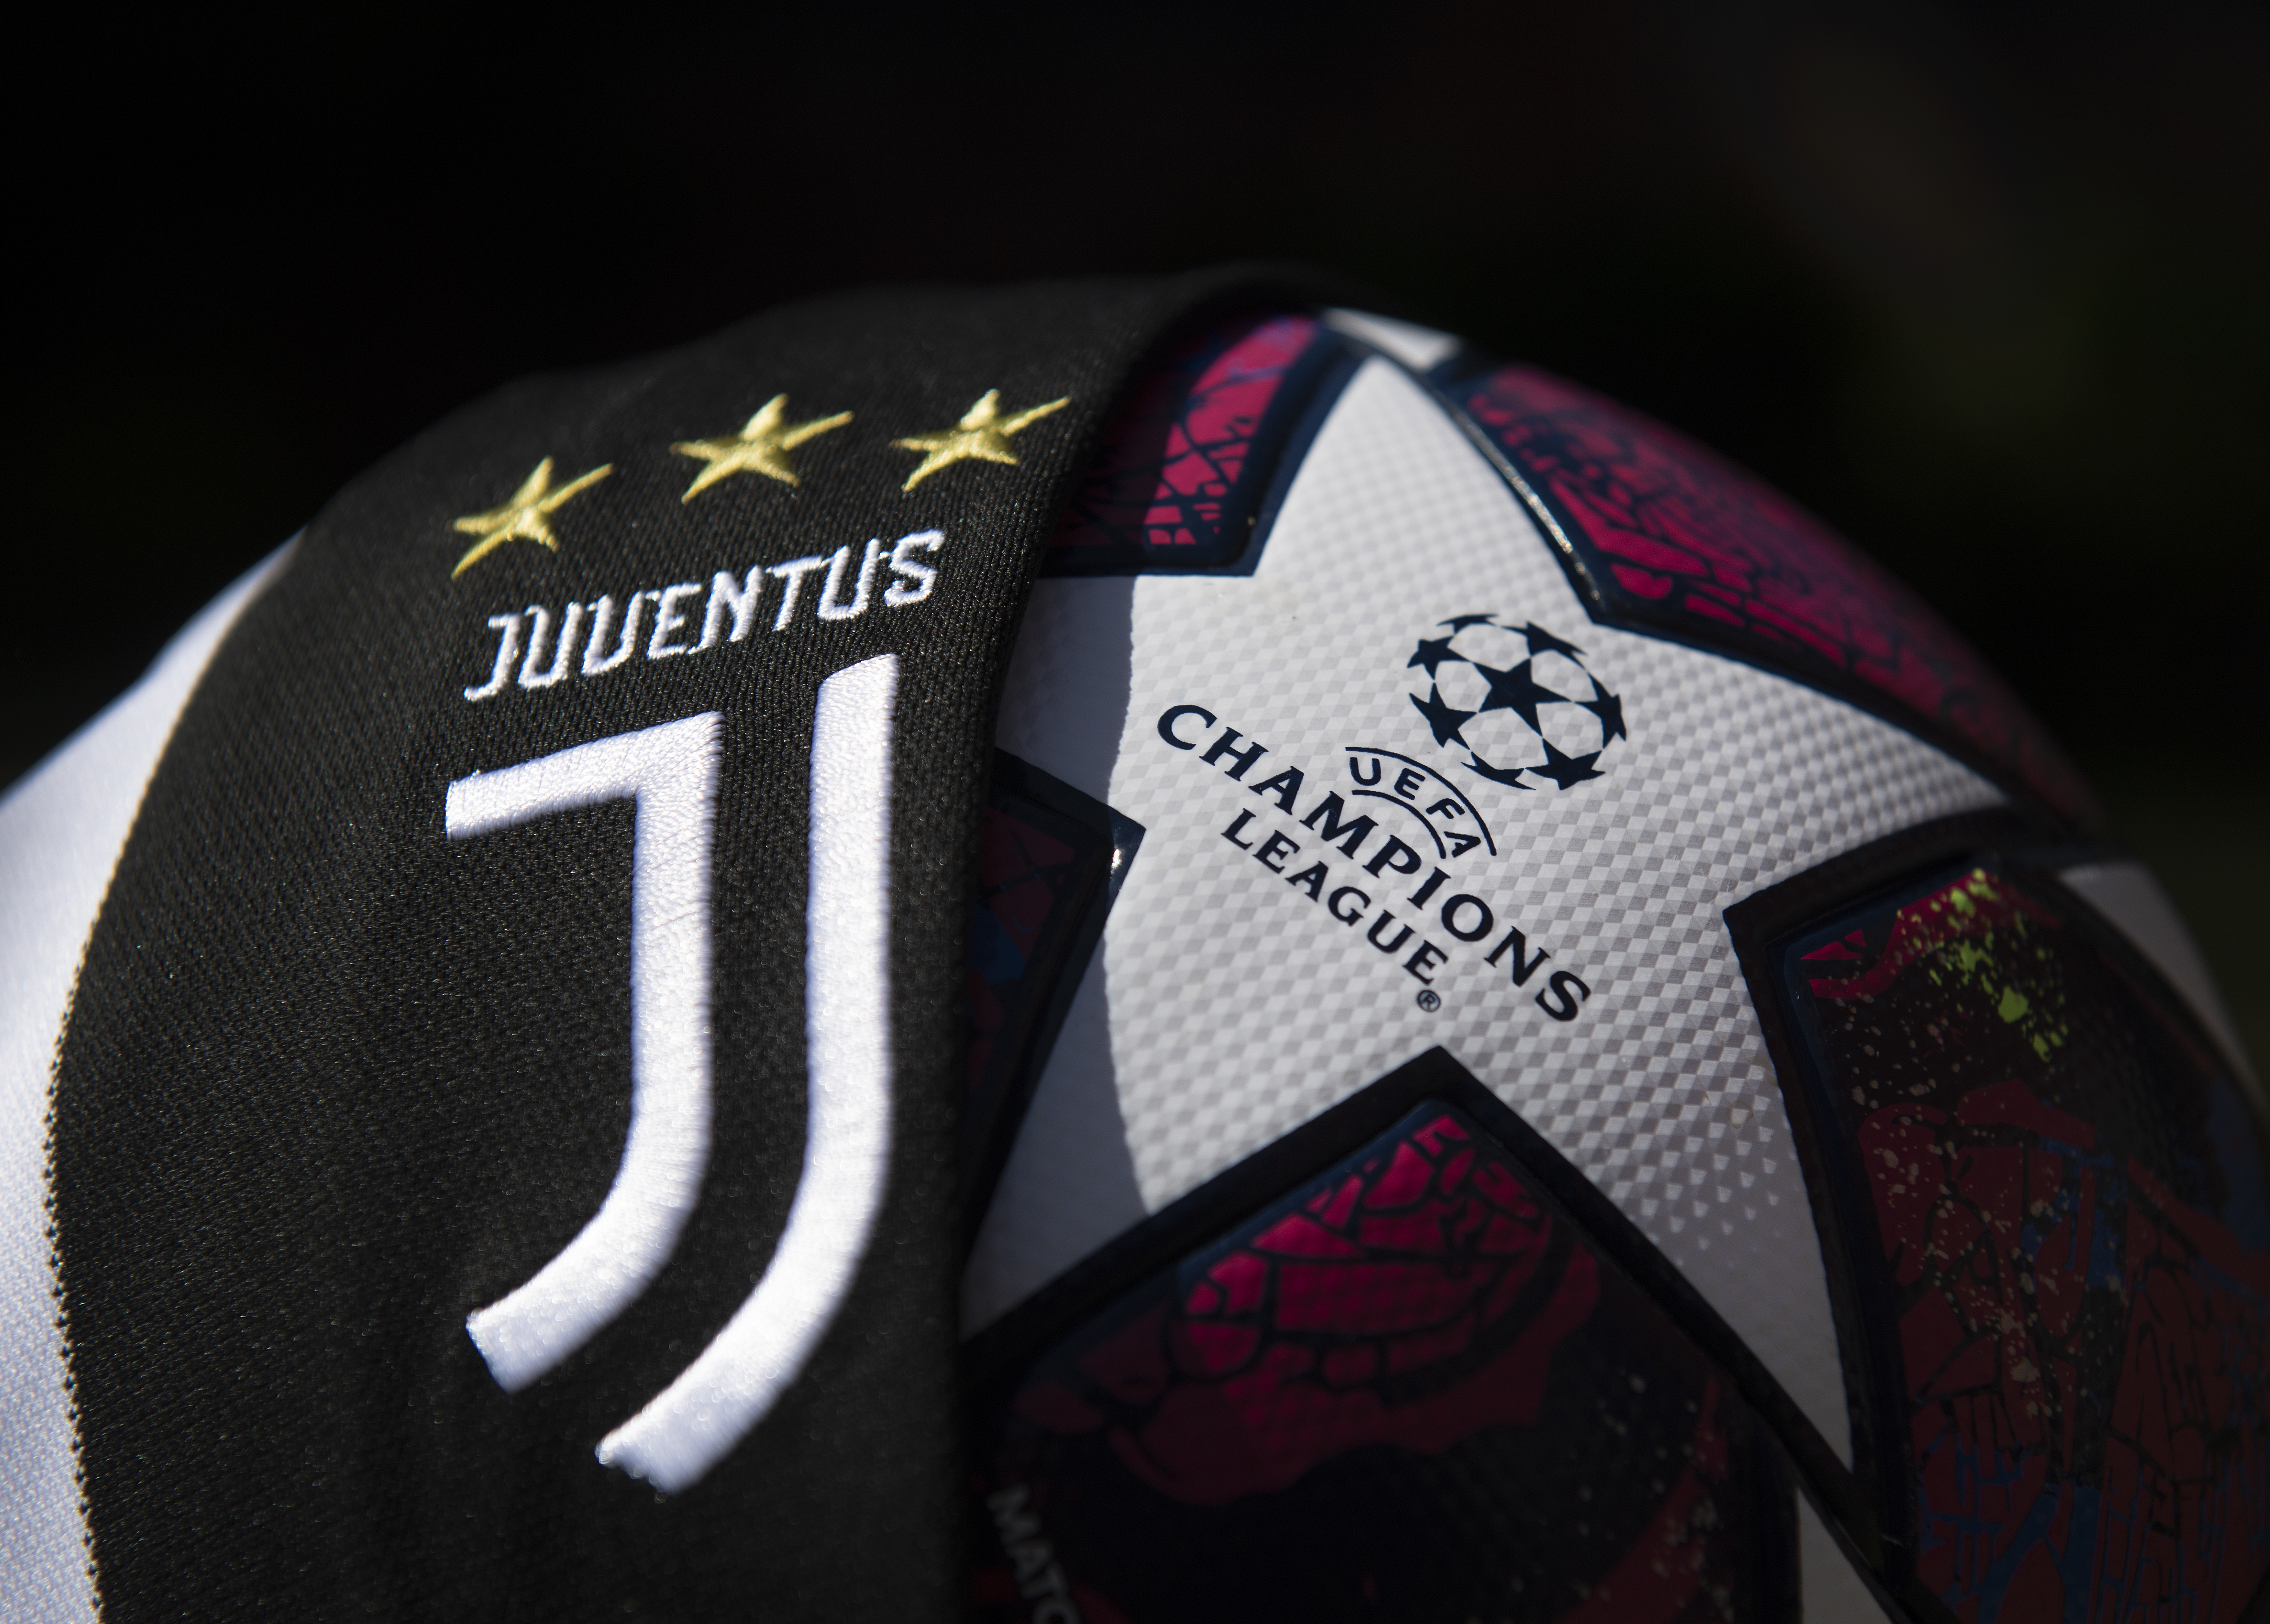 The Juventus Club Crest and Champions League Match Ball